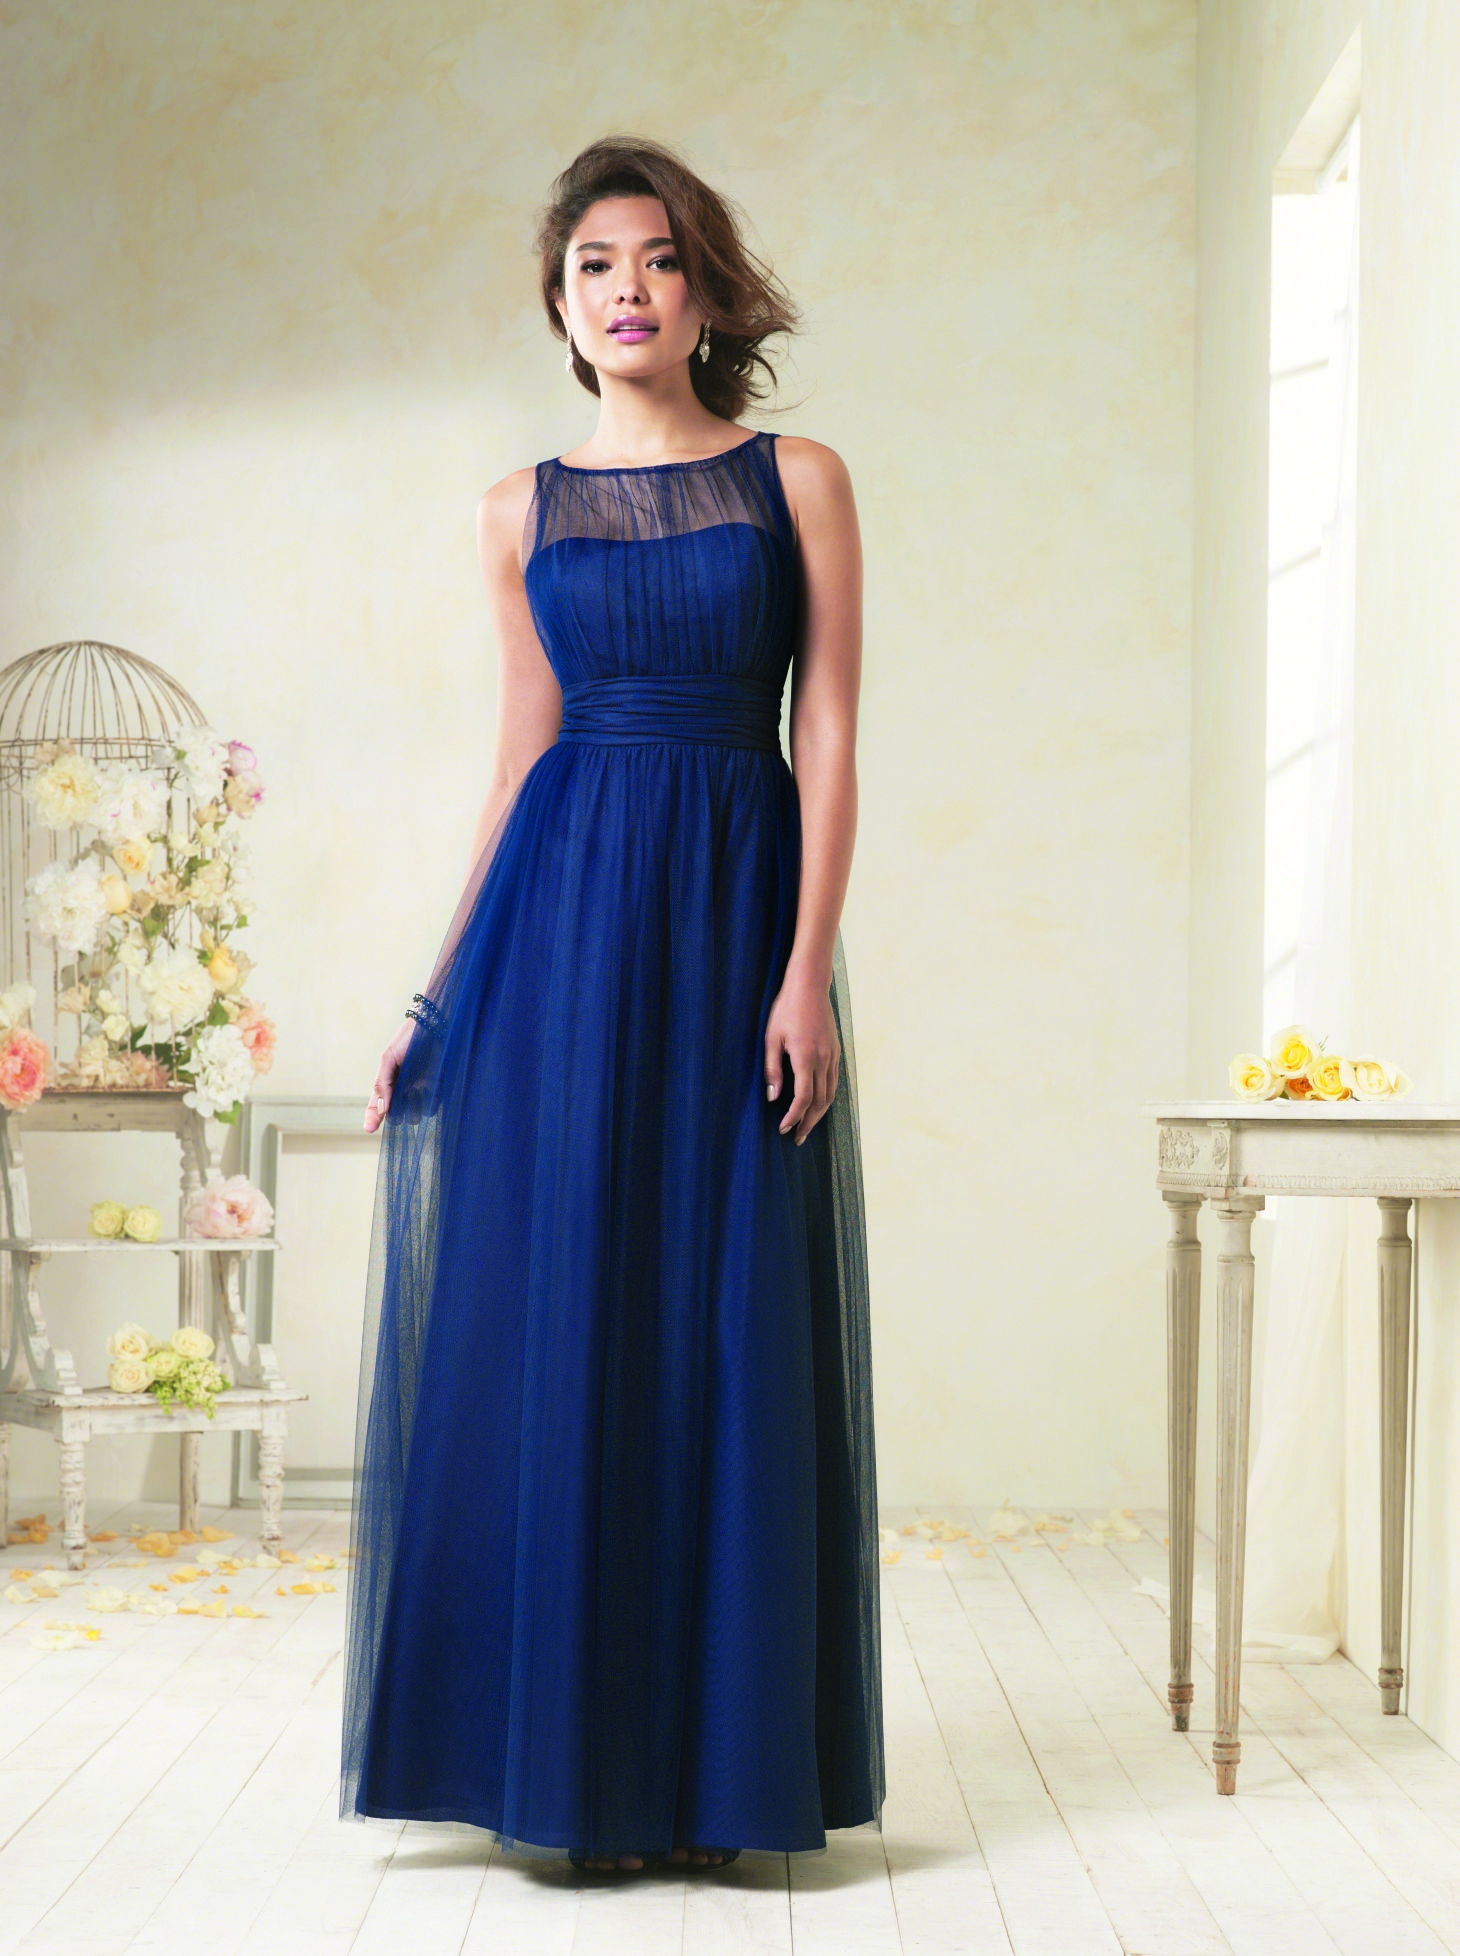 Alfredangelo bridesmaid modern vintage style wedding dresses